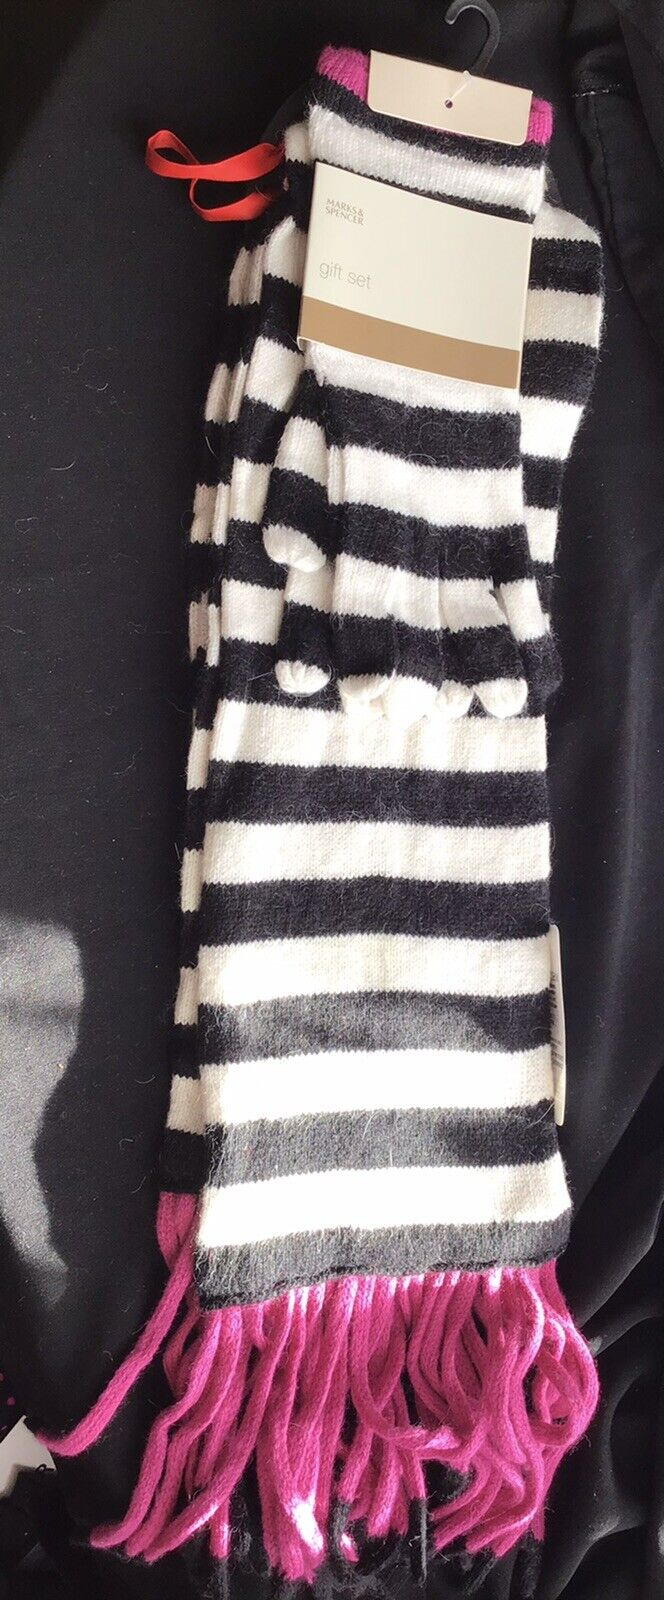 M&S Scarf And Glove Set Black White Pink Brand New